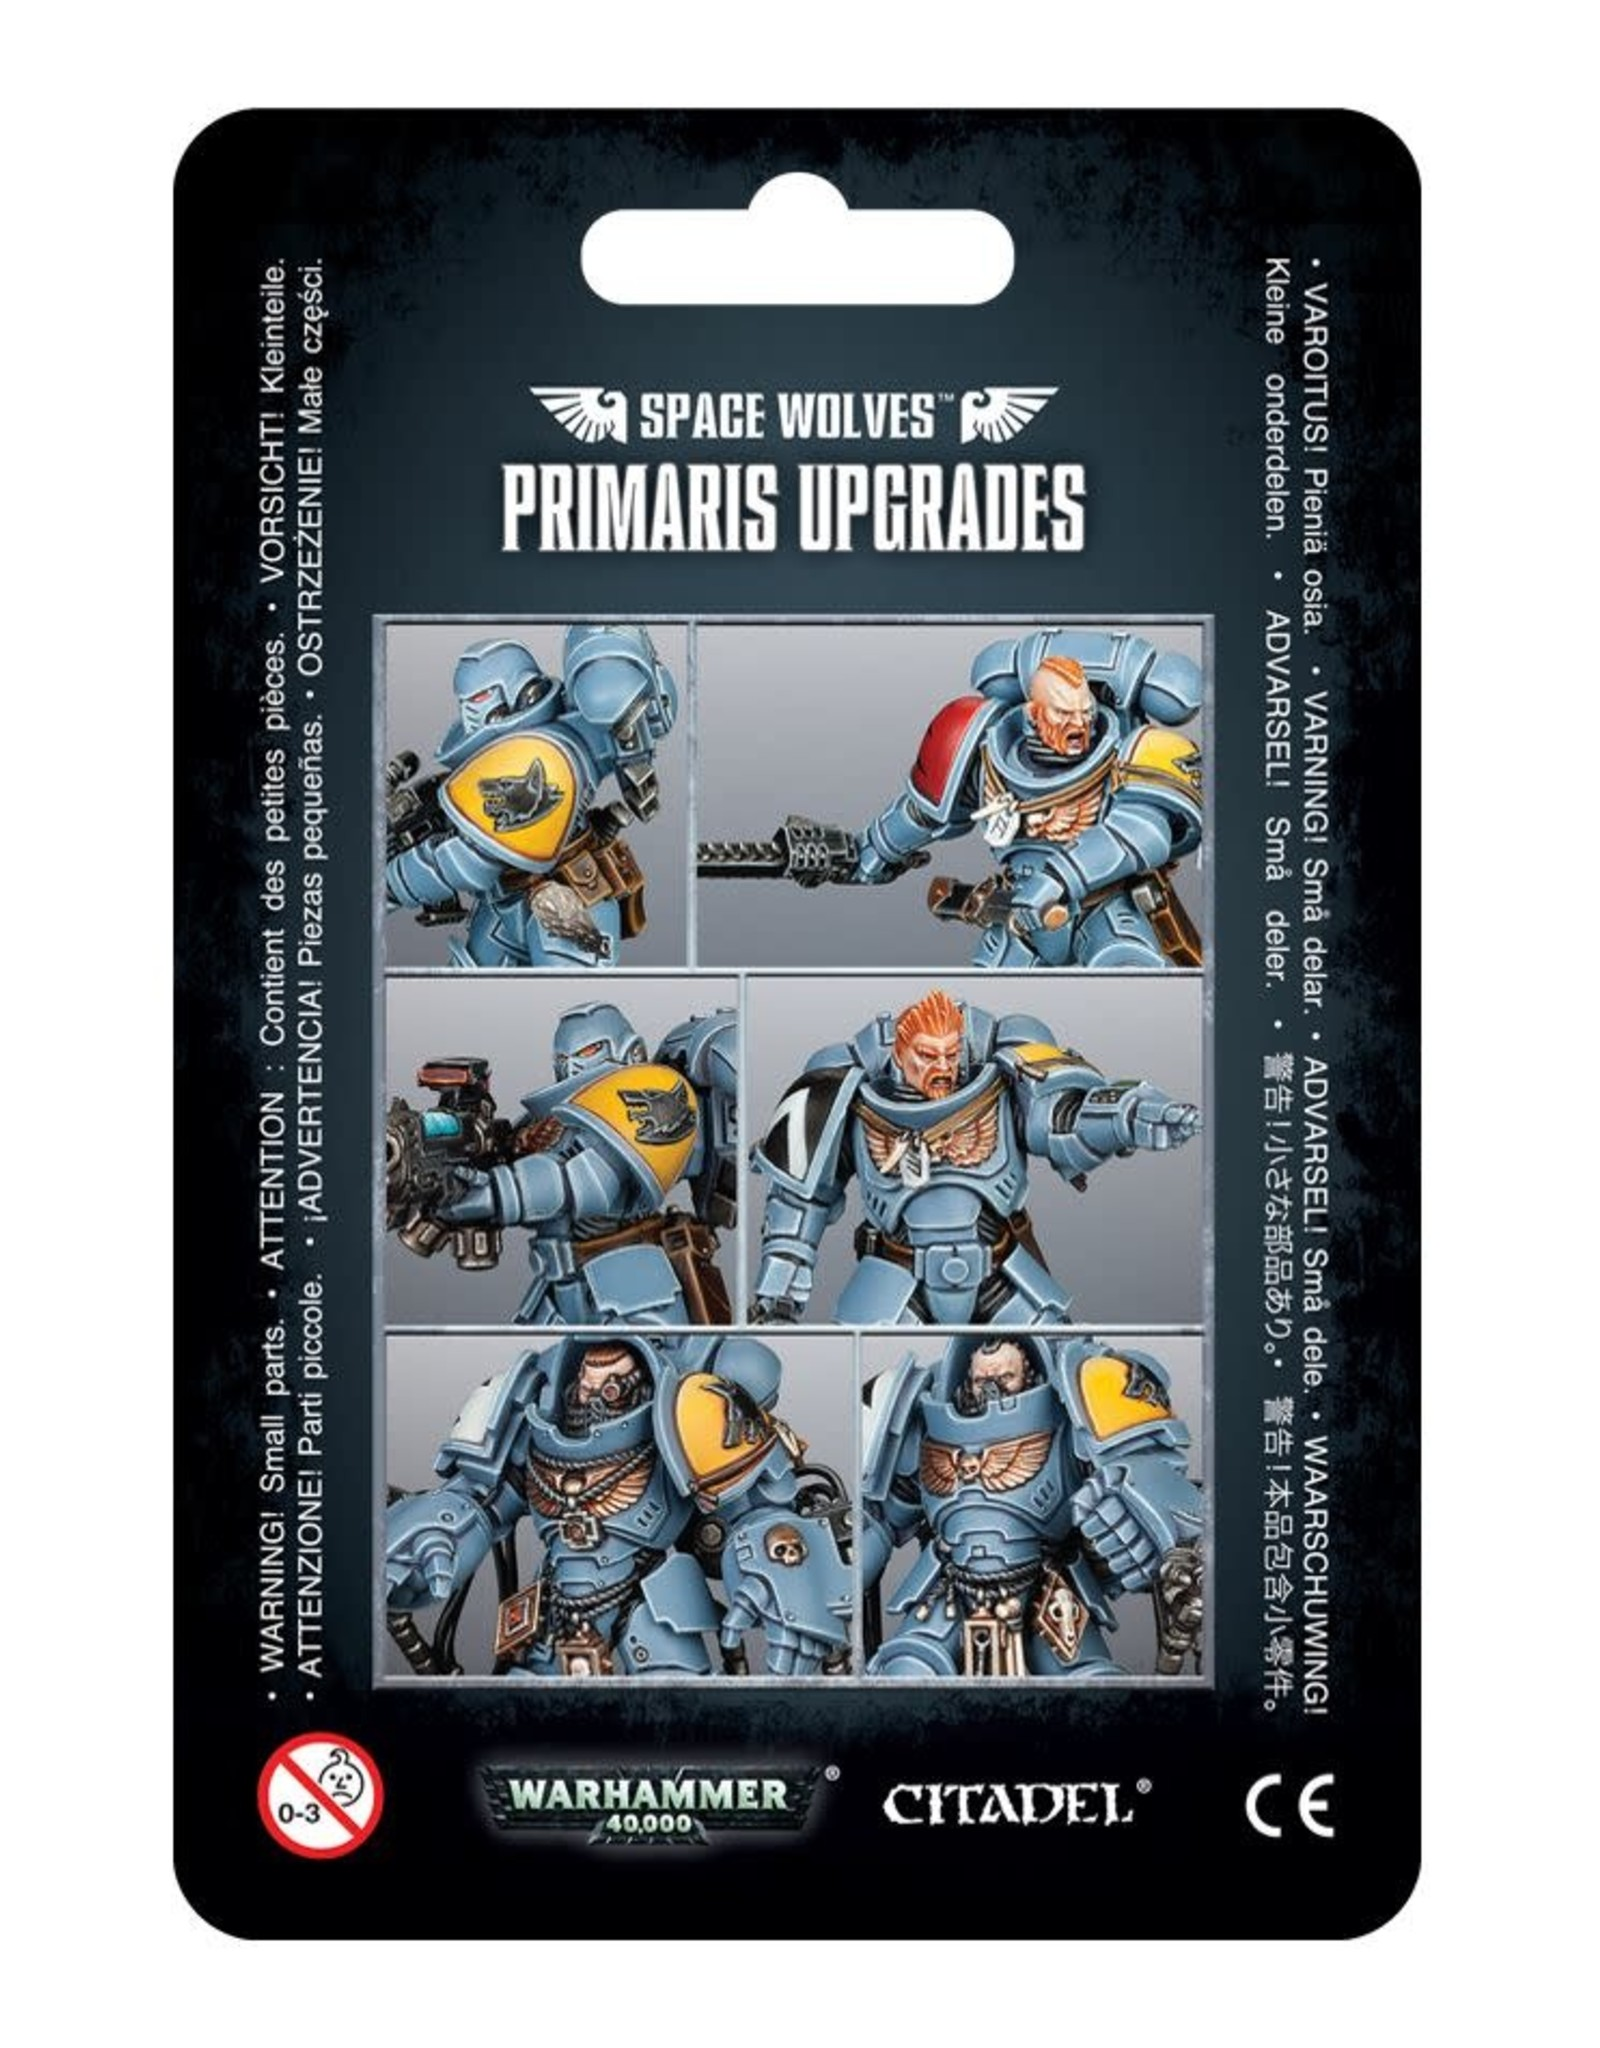 Warhammer 40K Space Wolves Primaris Upgrades